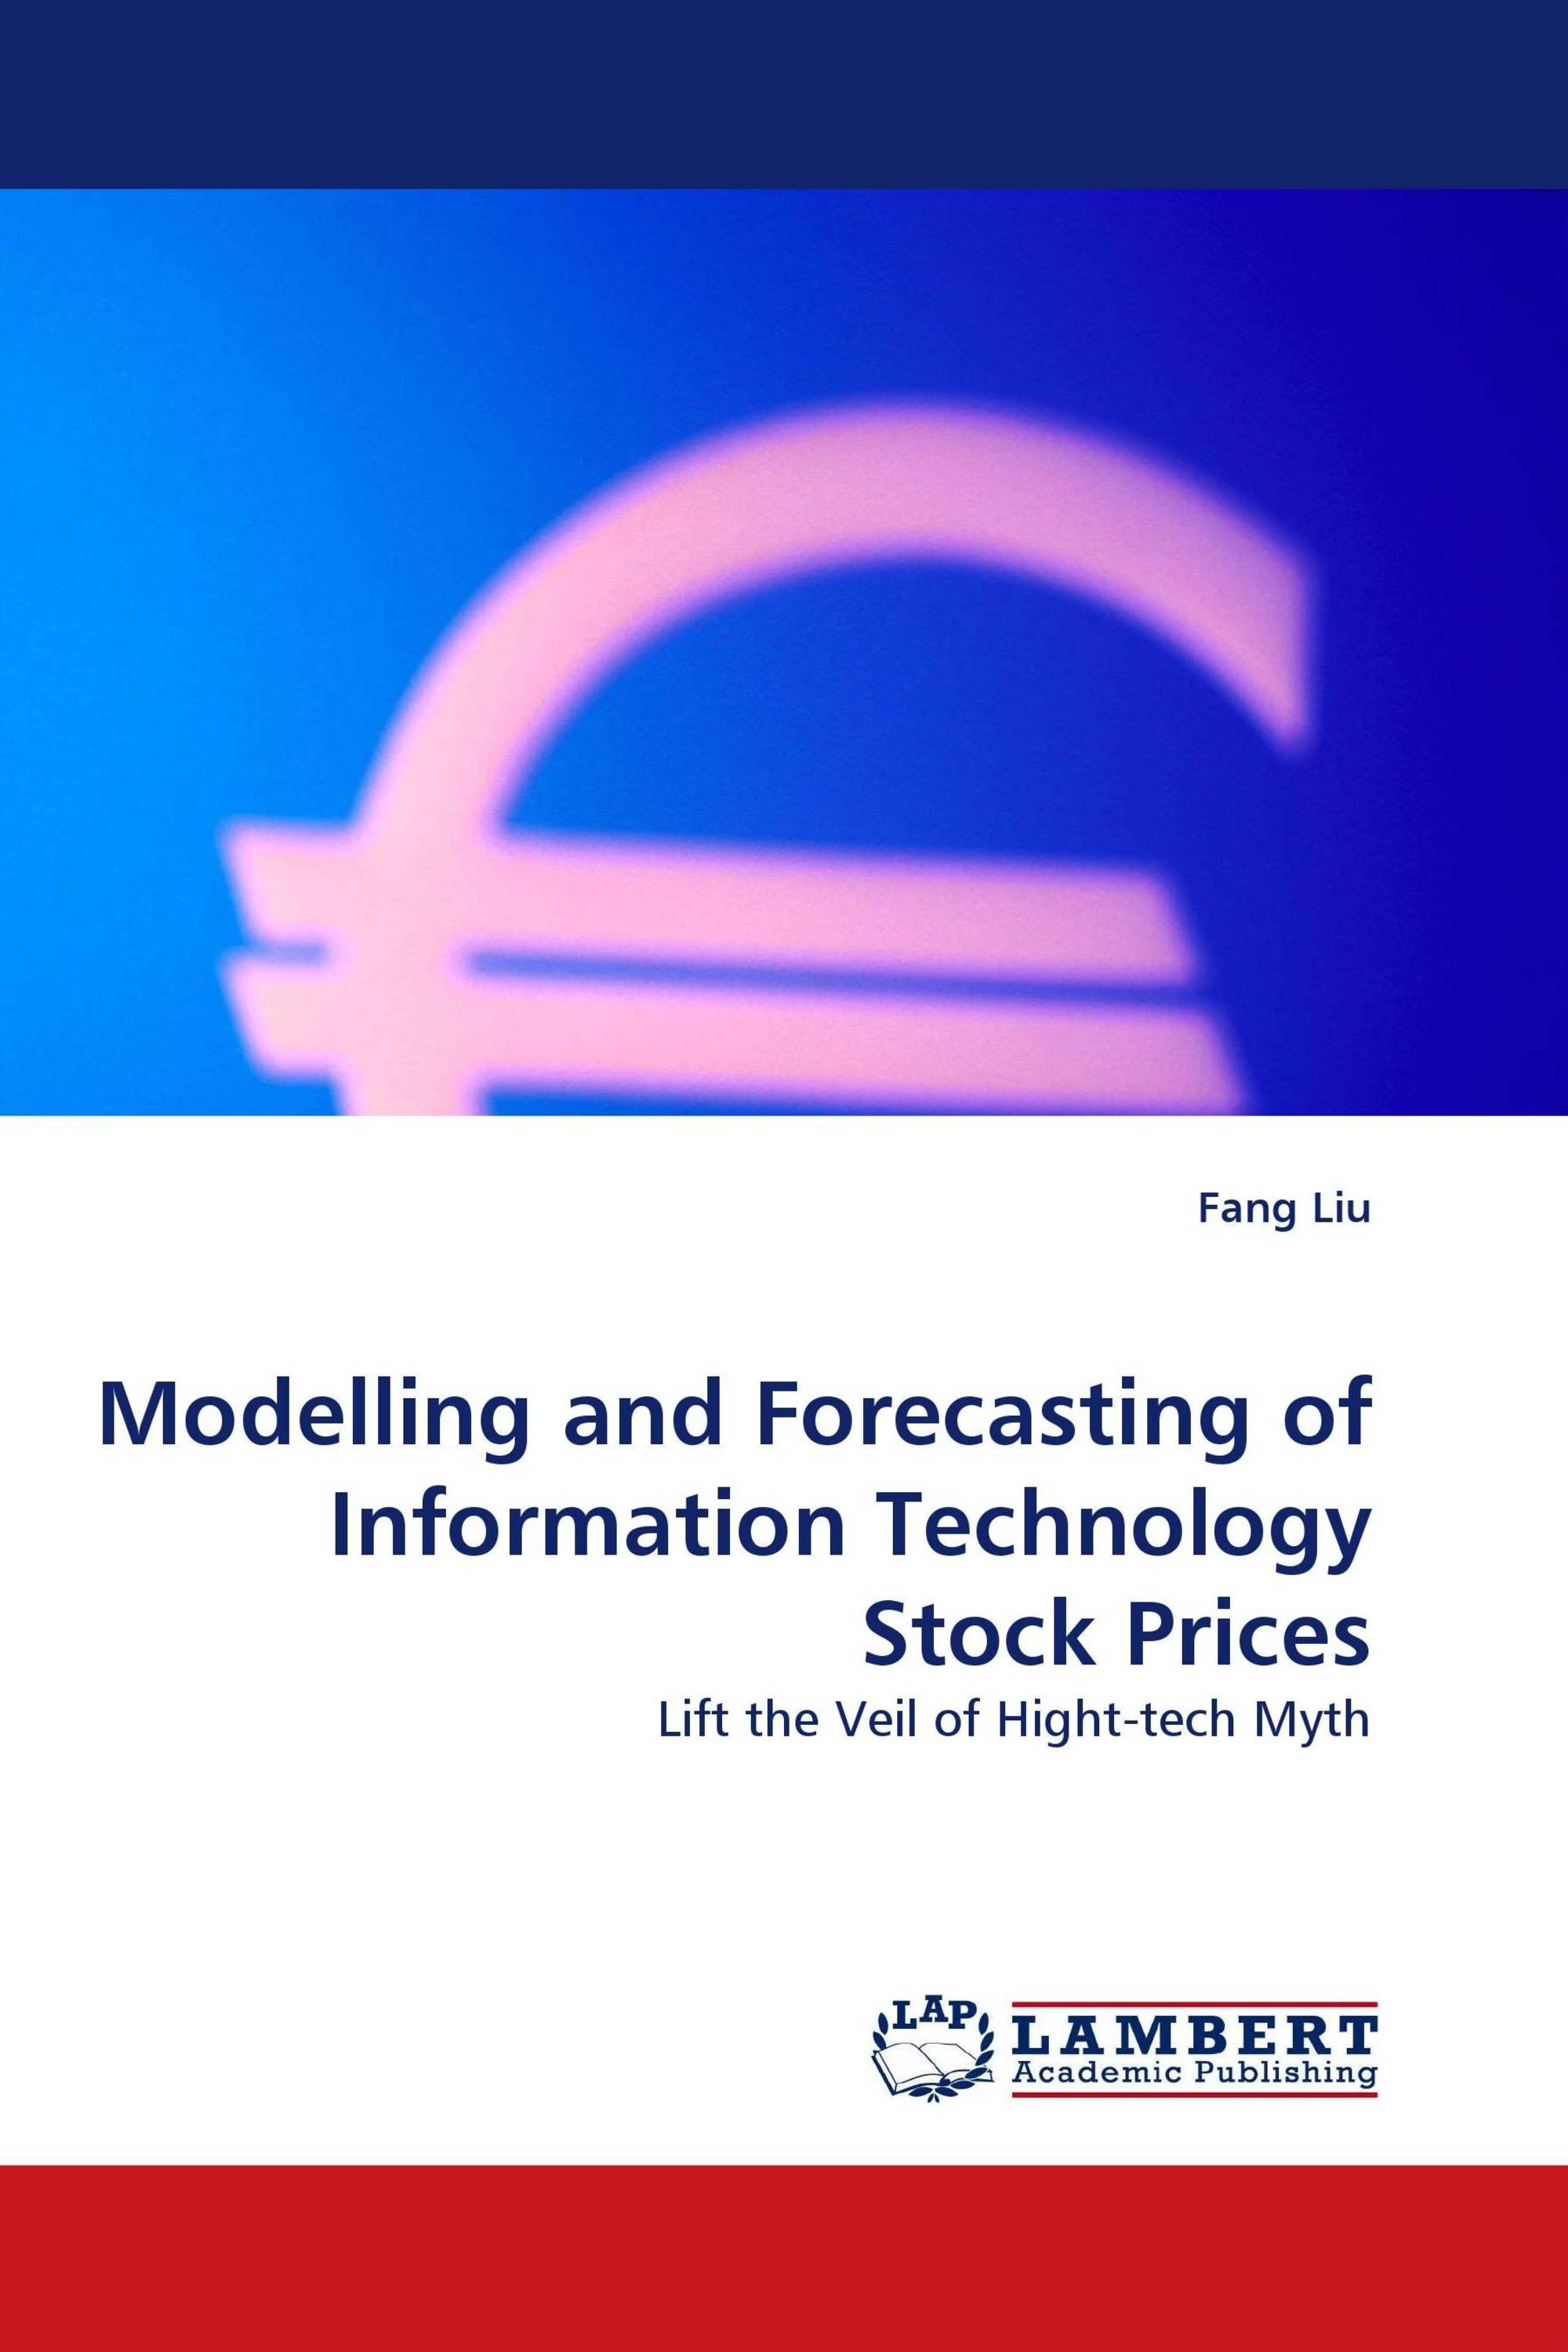 Modelling and Forecasting of Information Technology Stock